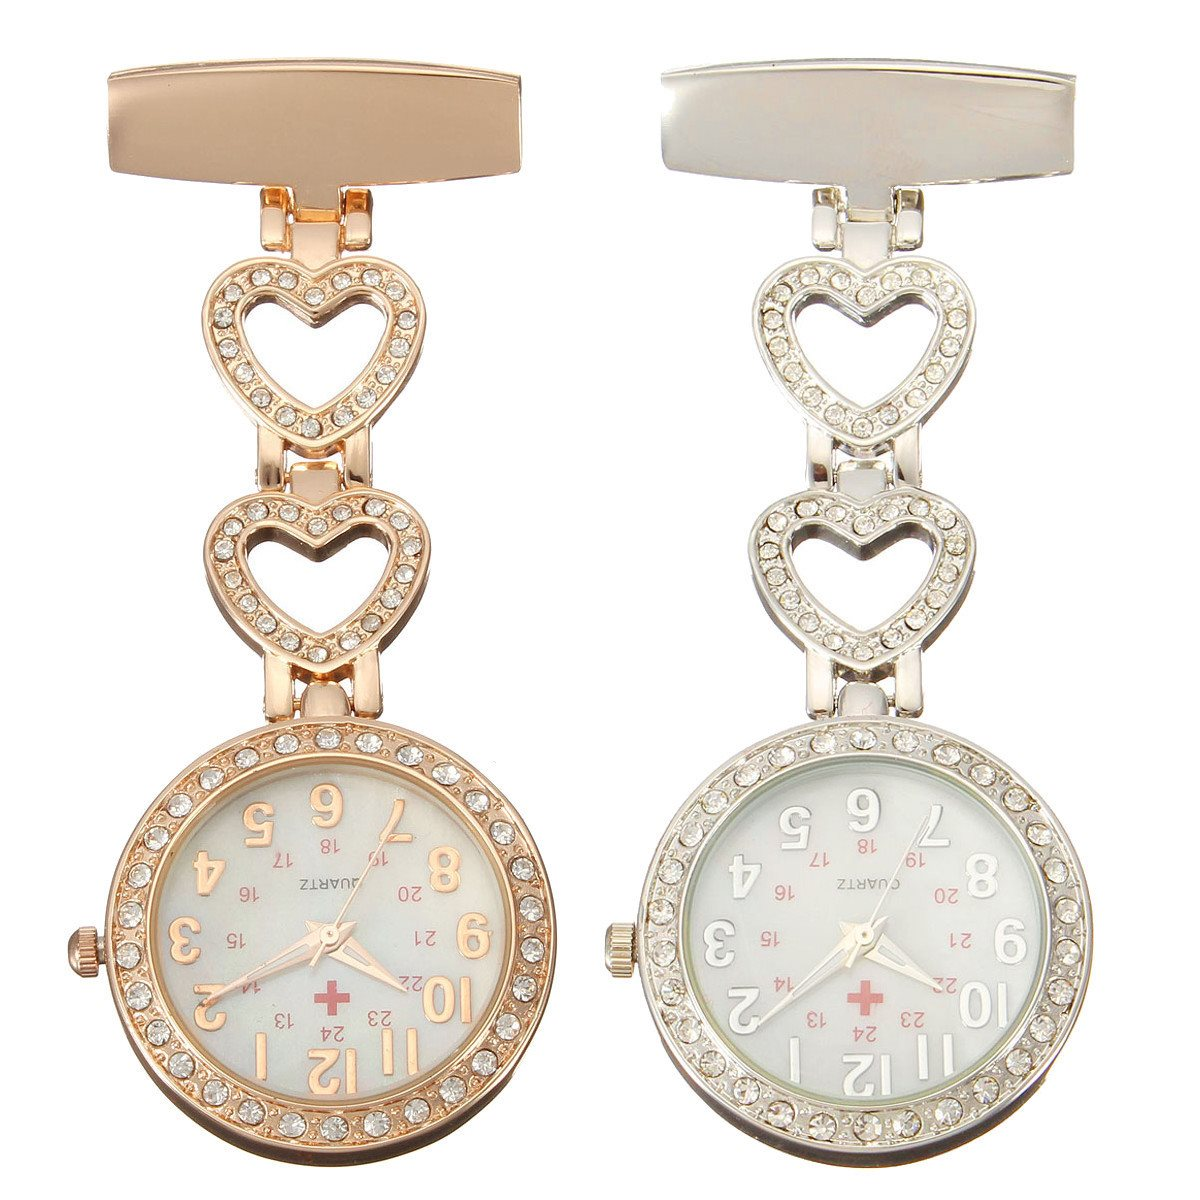 Clip-on Fob Quartz Brooch Heart Shaped Hanging Nurse Pin Watch Crystal Men Women Steel Fashion Vest-Pocket Nurse Watches Clock new luxury round dial clip on fob nurse pocket watch quartz brooch hanging fashion men women luminous pin watch steel relogio